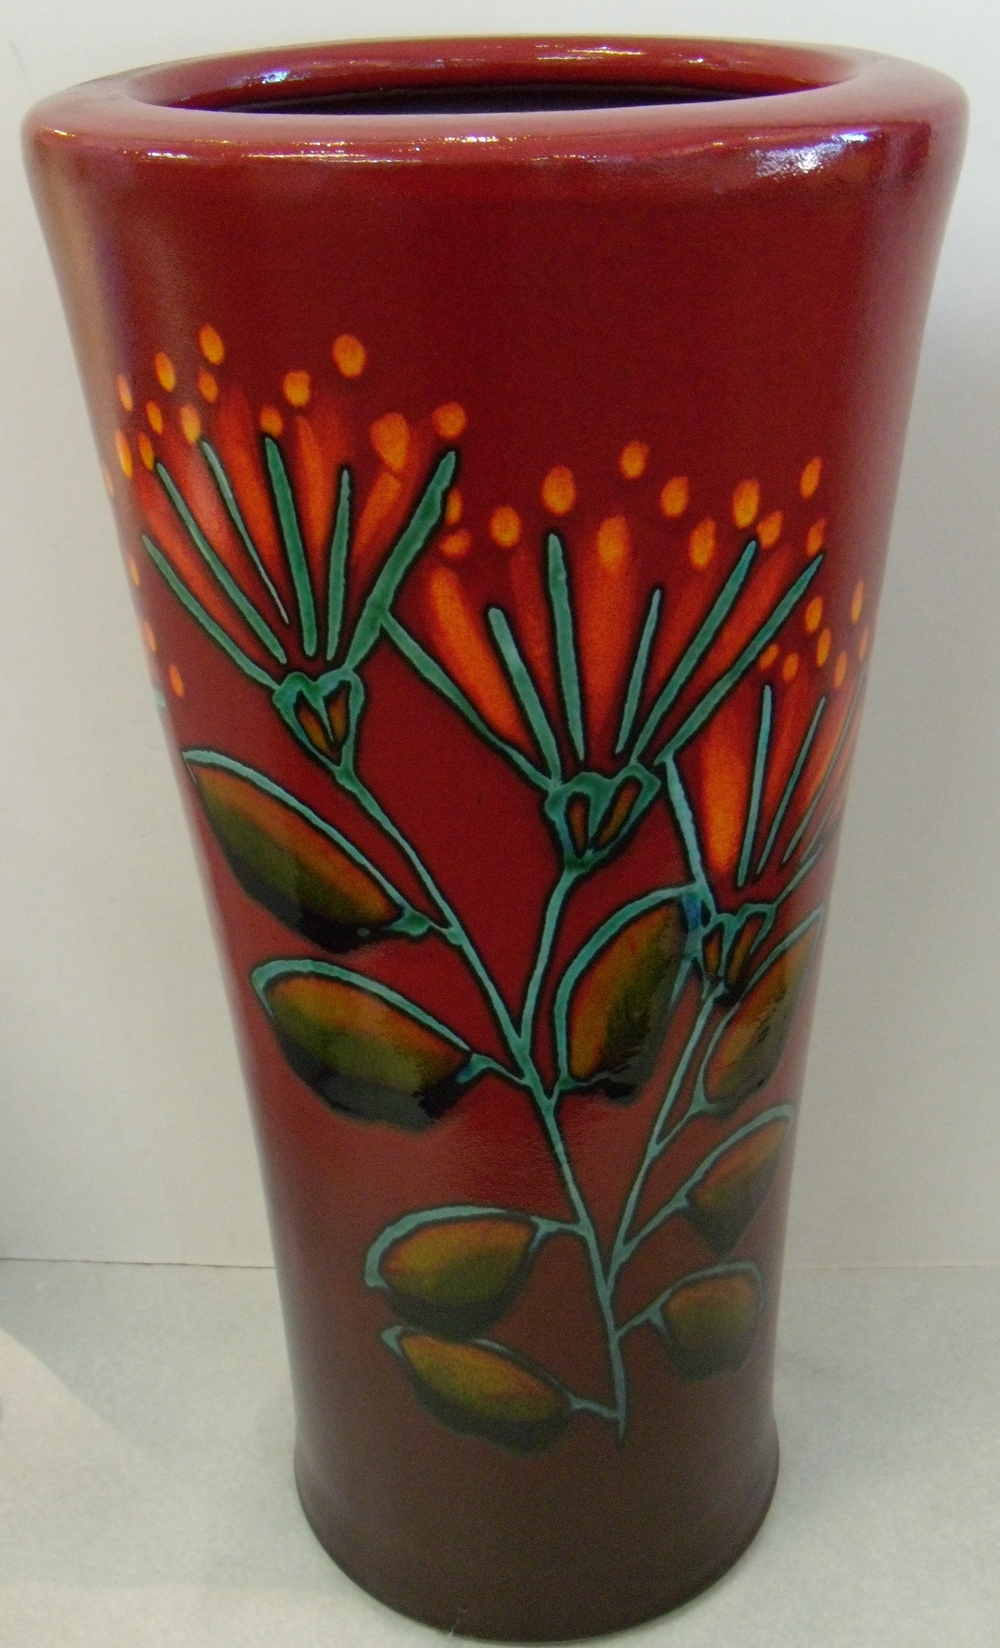 Rata Flowers Umbrella Pot $478 Measures 370 mm diameter at top x 760 mm h $299 measures 270 mm d x 560 mm h $173 Measures 185 mm d x 380 mm h